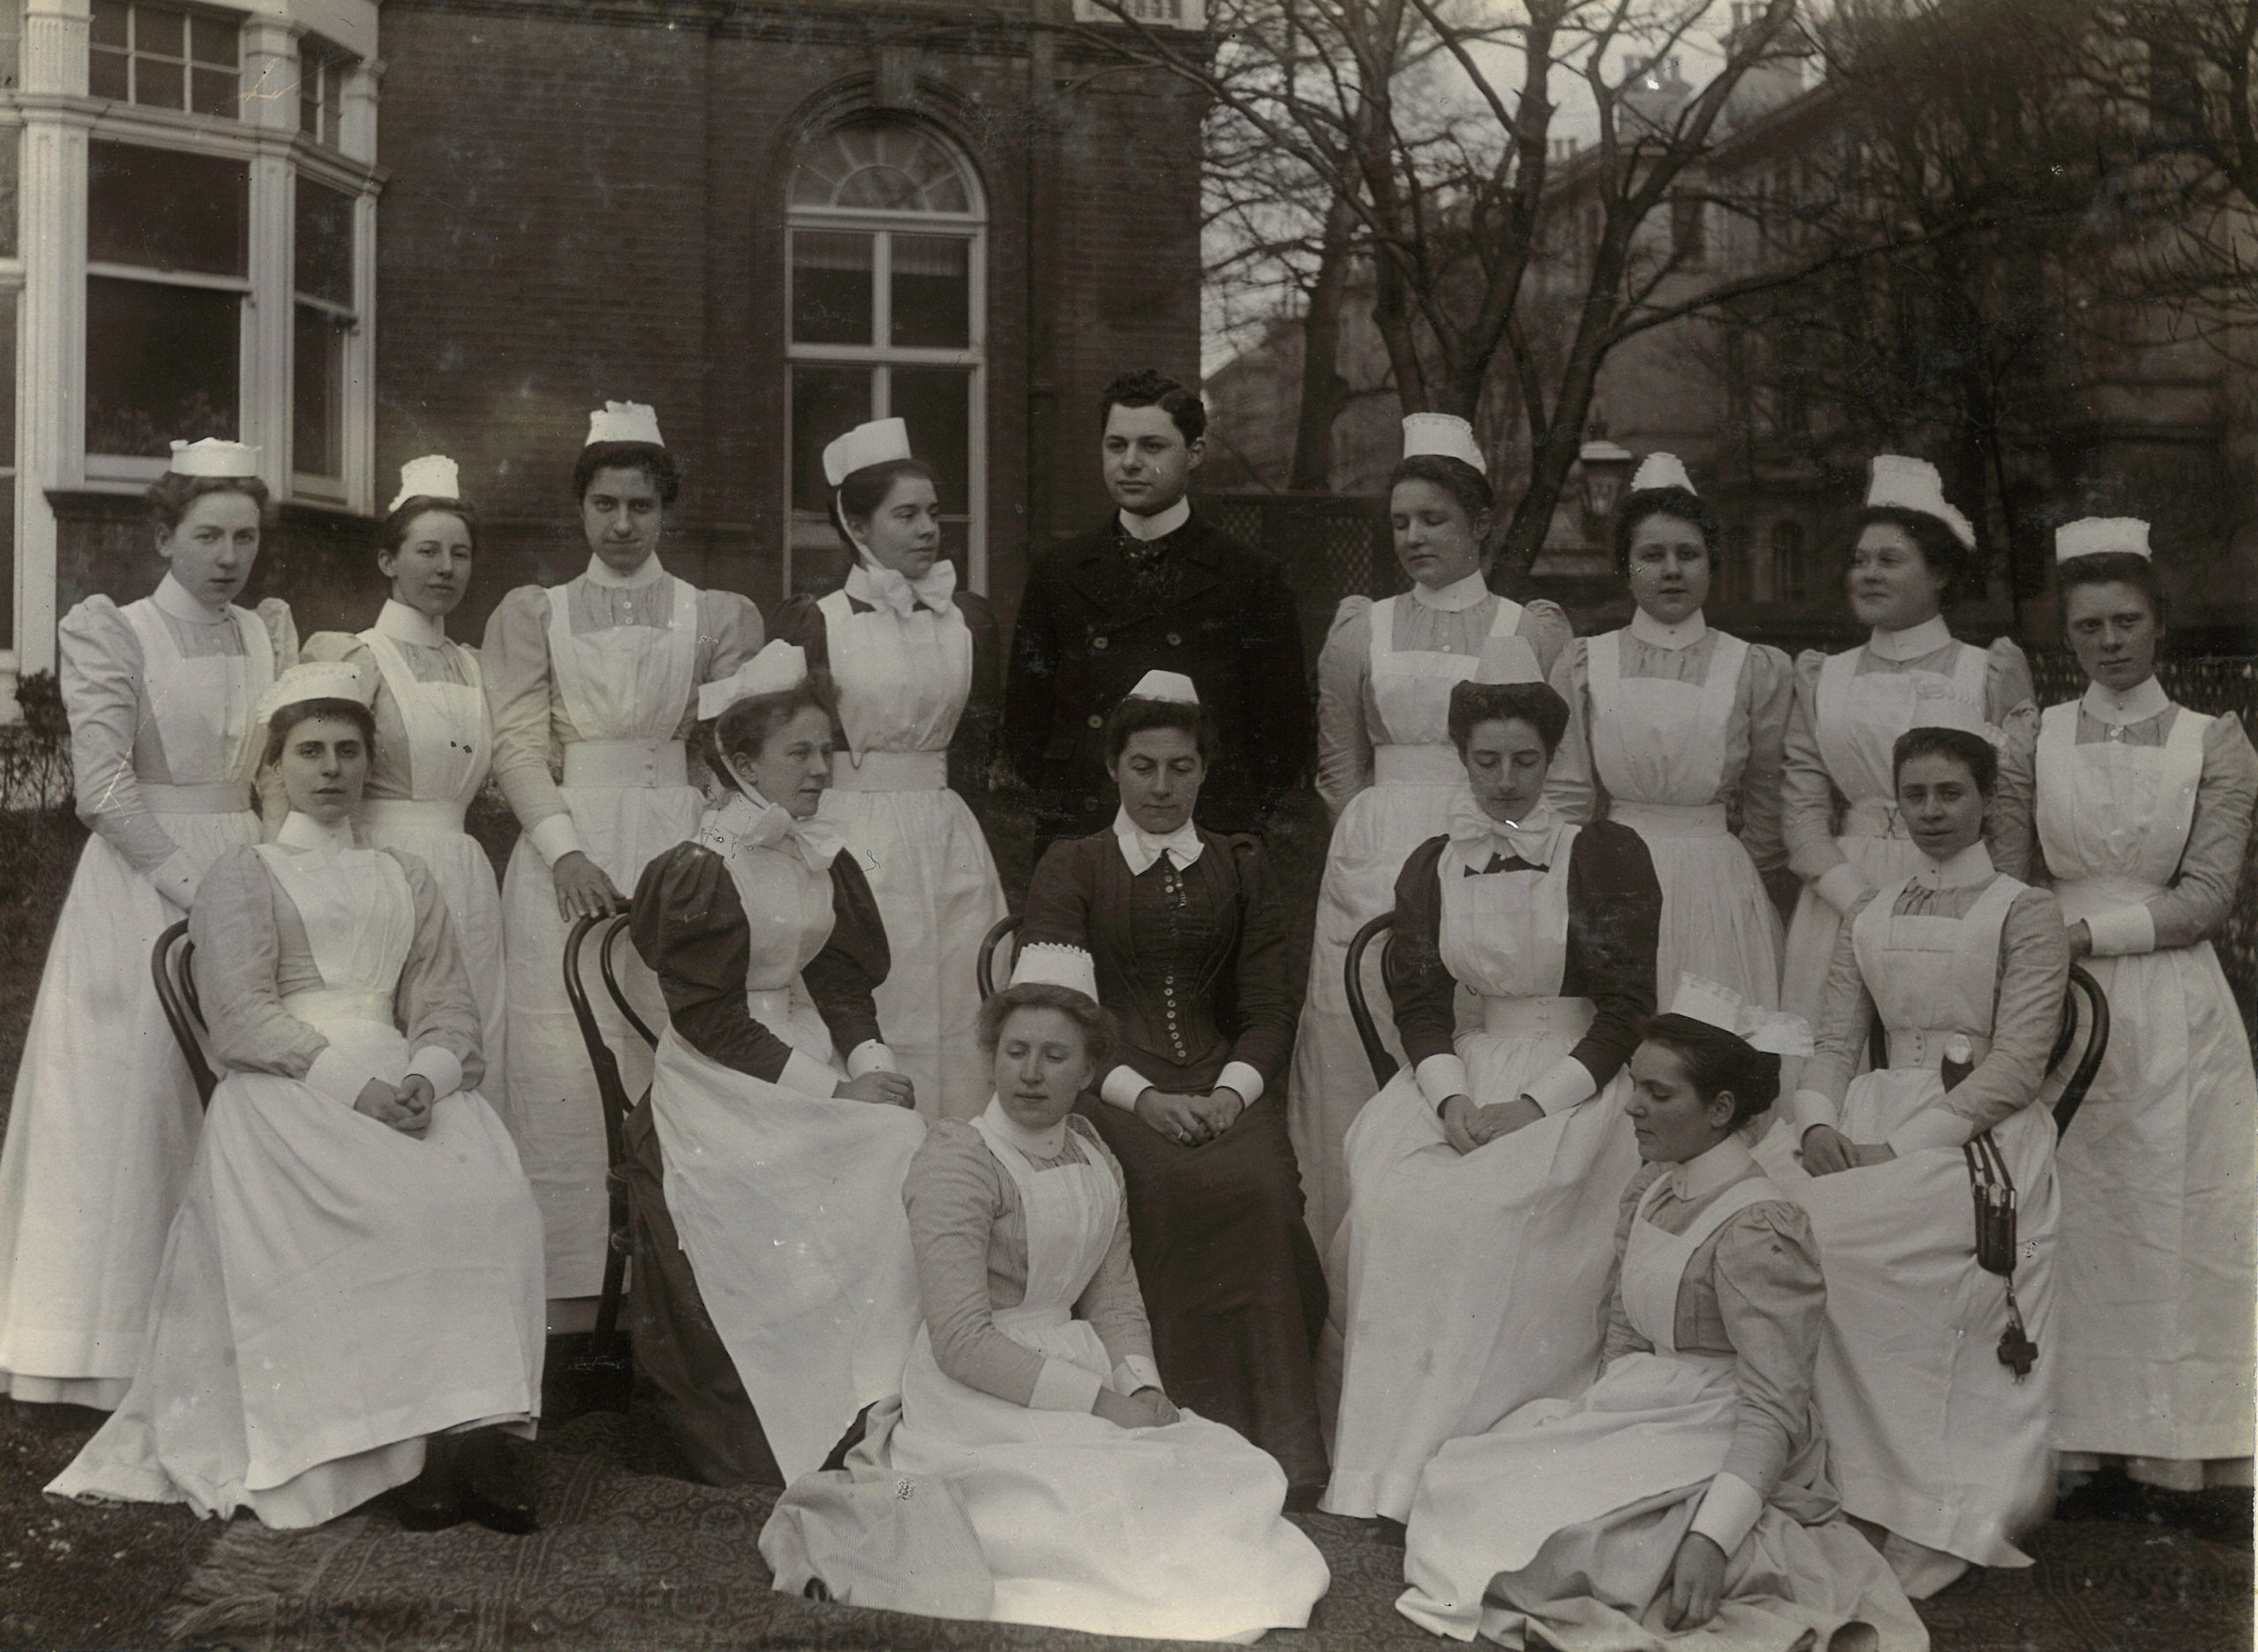 A large group of hospital staff in uniforms posing in the grounds of the hospital, c. 1900